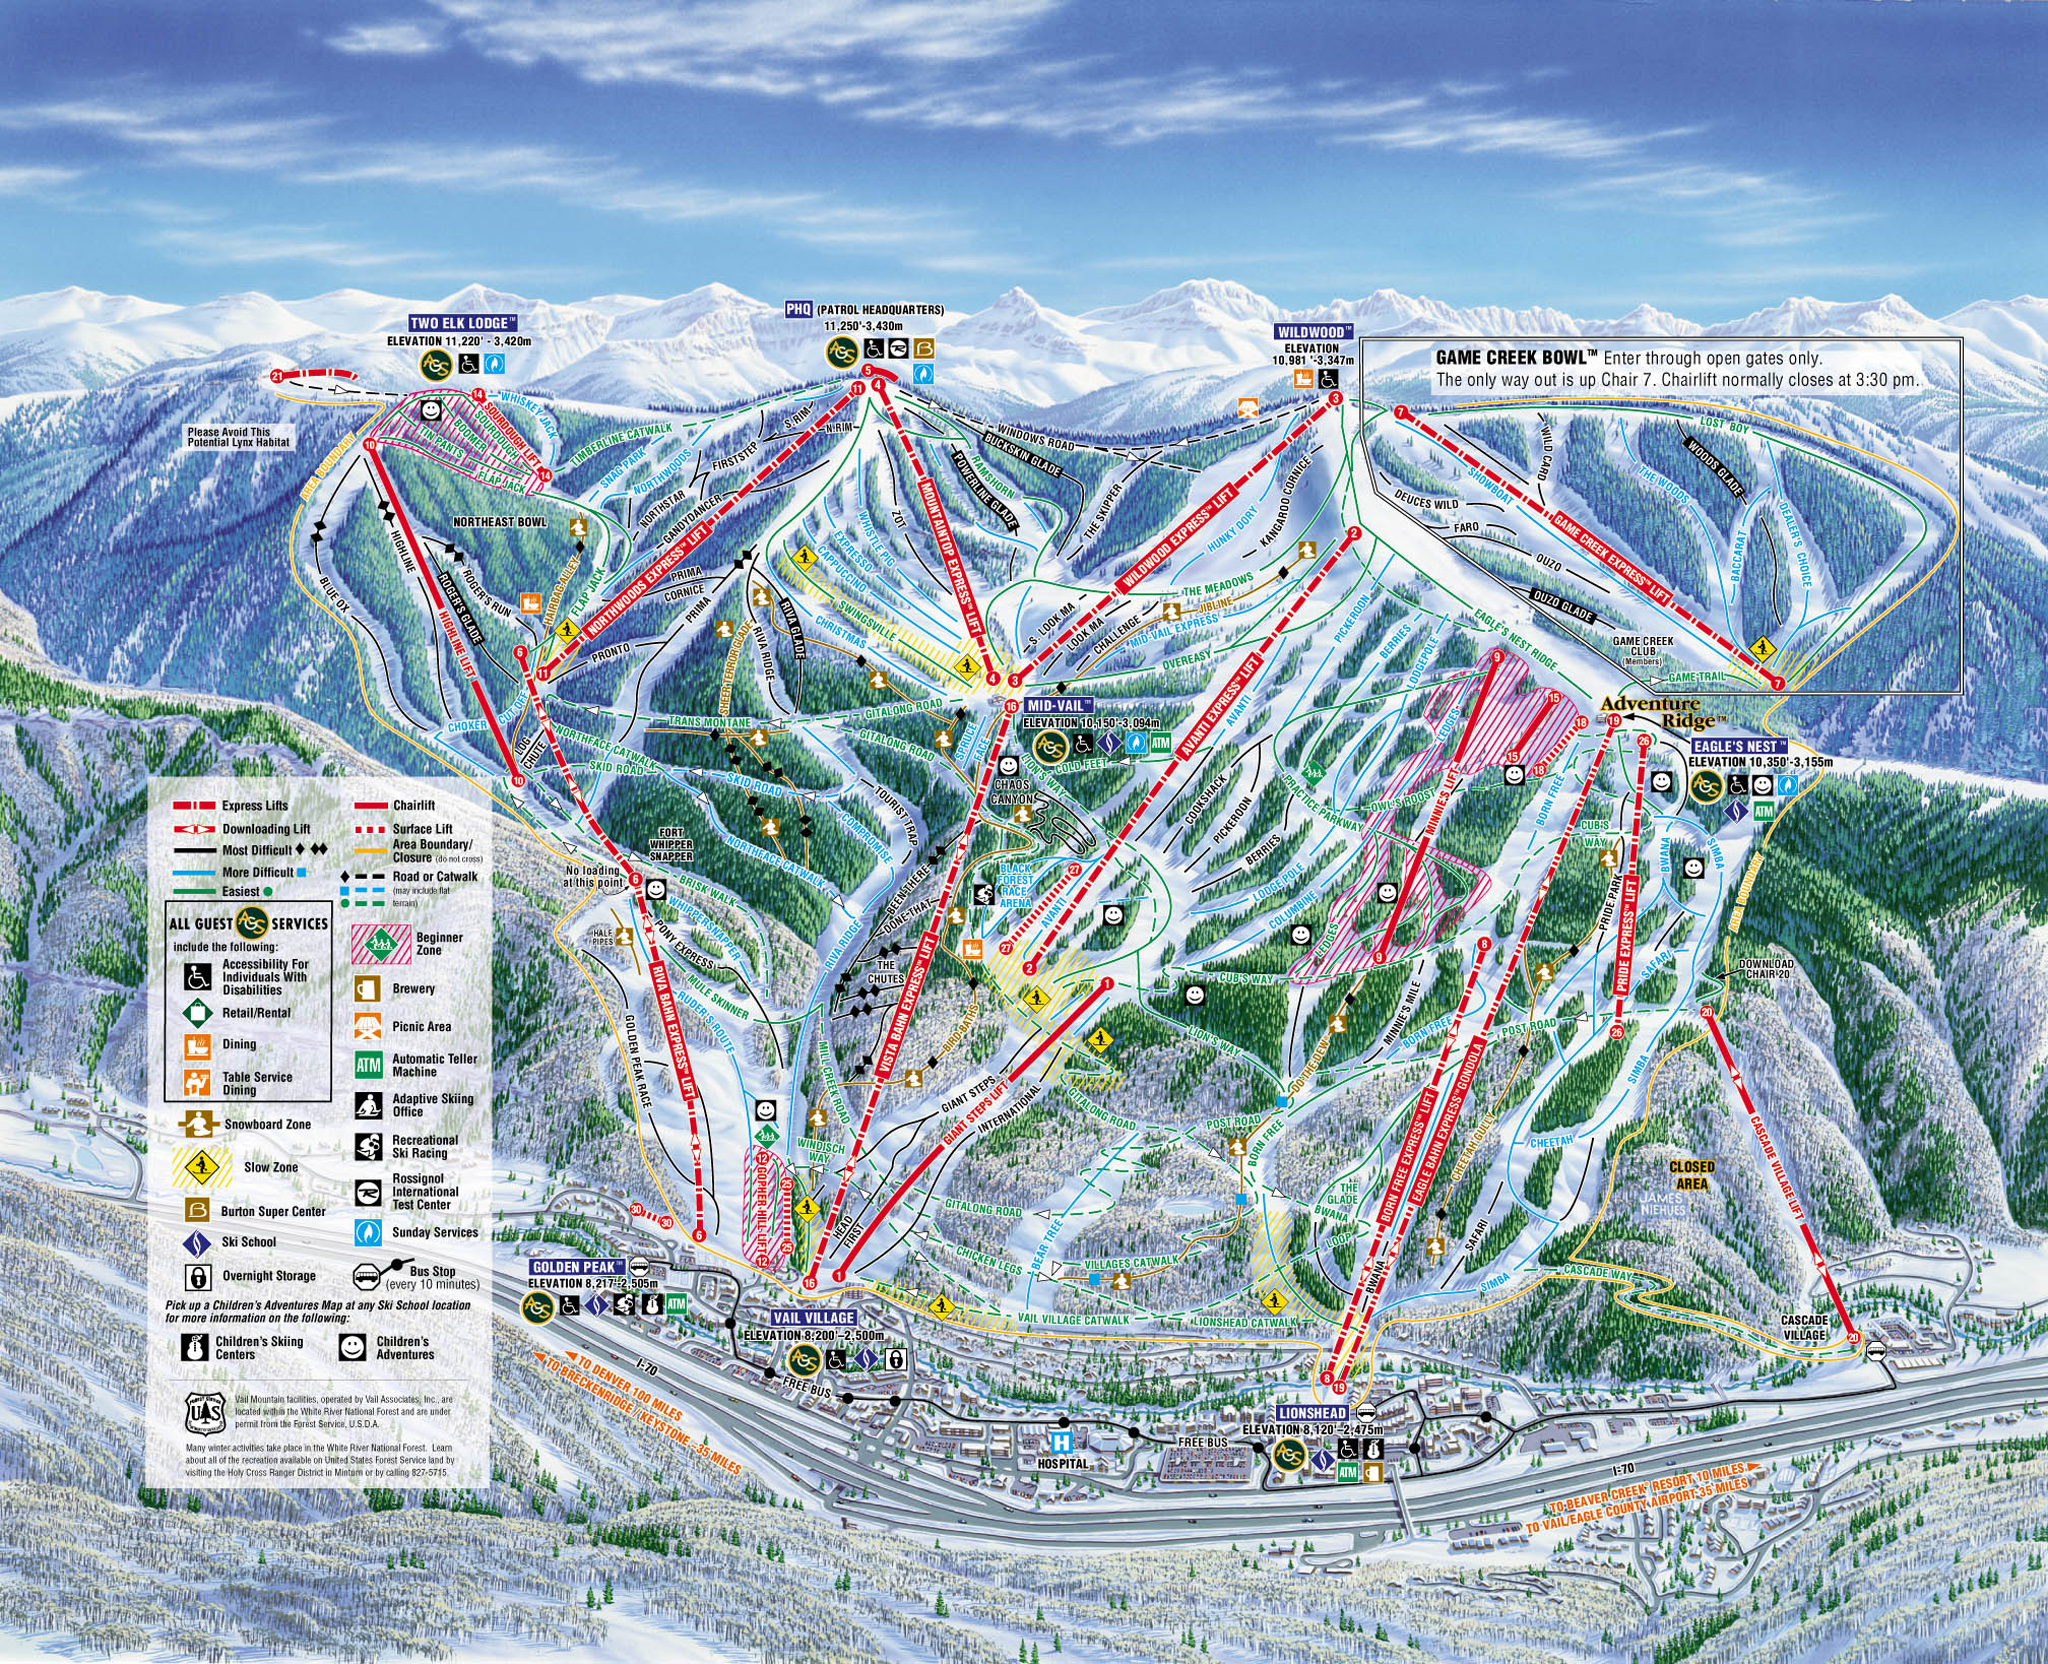 colorado mountain express coupon vail - pizza only coupons for chuck